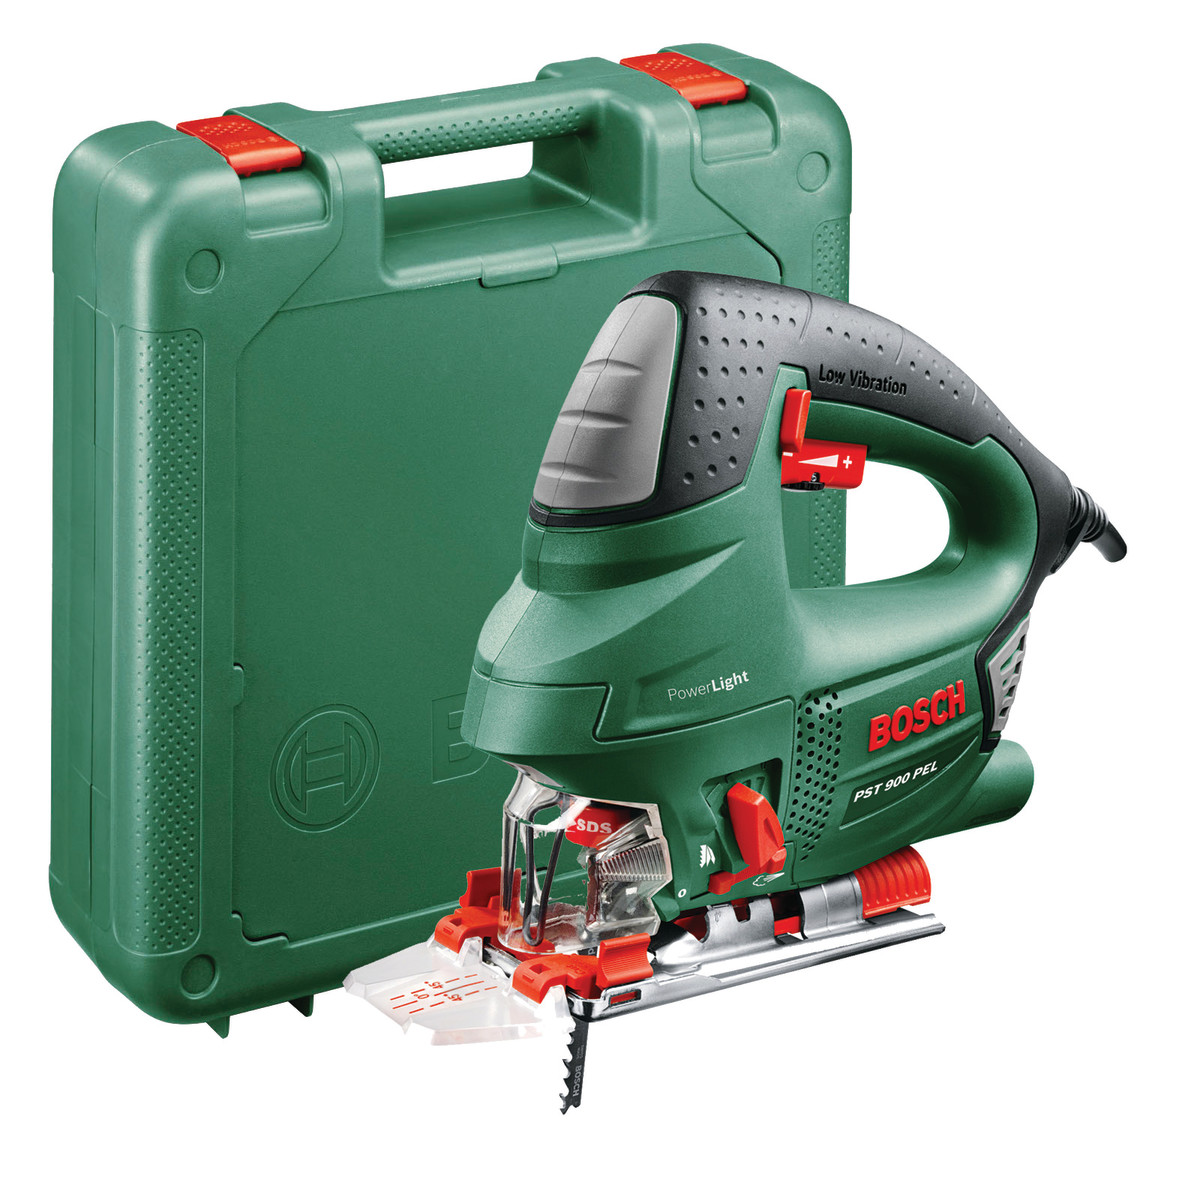 Bosch Seghetto alternativo Bosch PST900PE